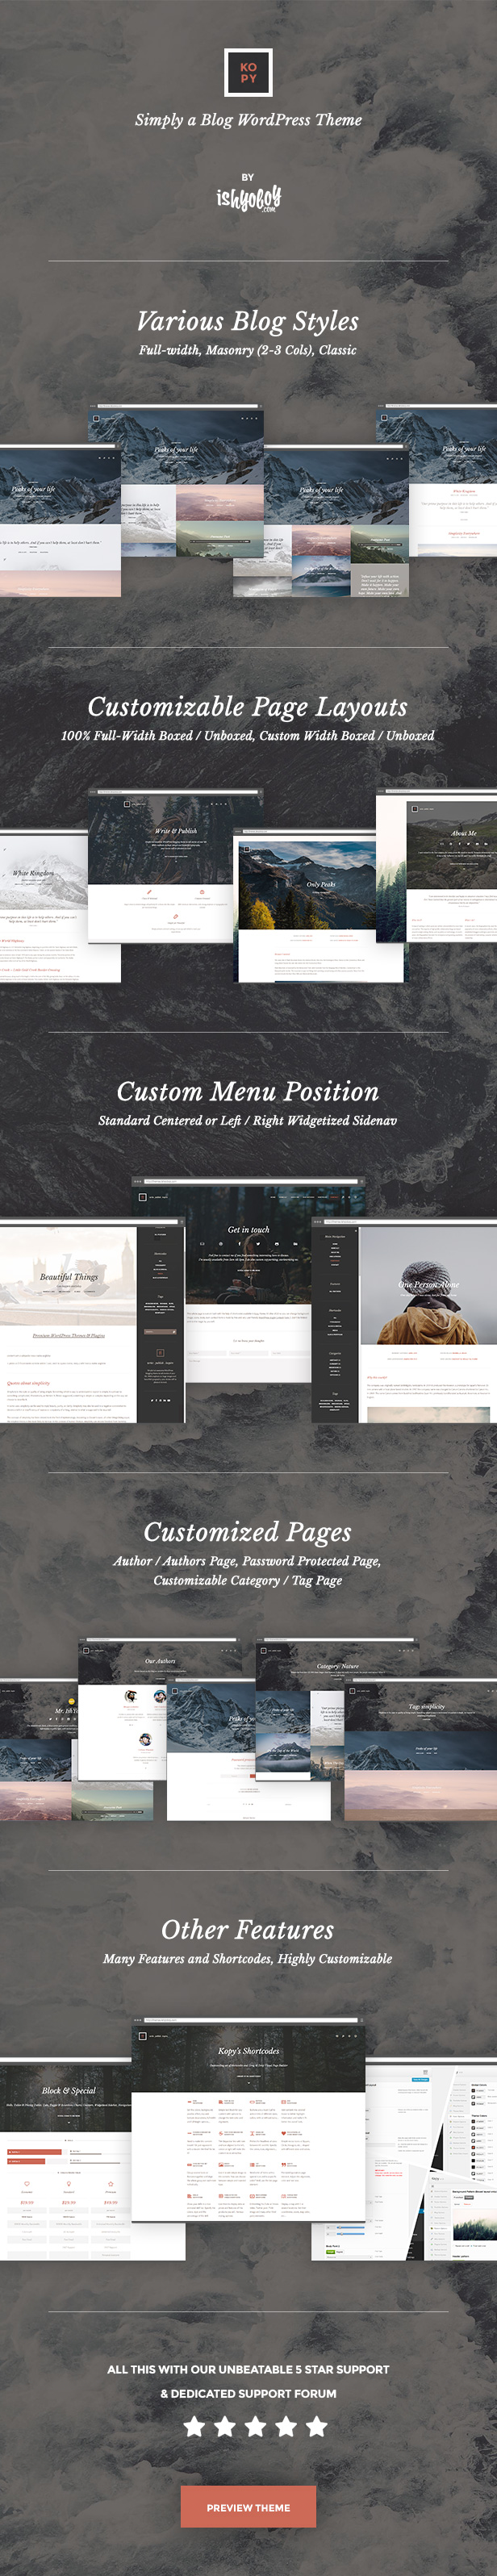 Kopy WP - Simply a Blog WordPress Theme